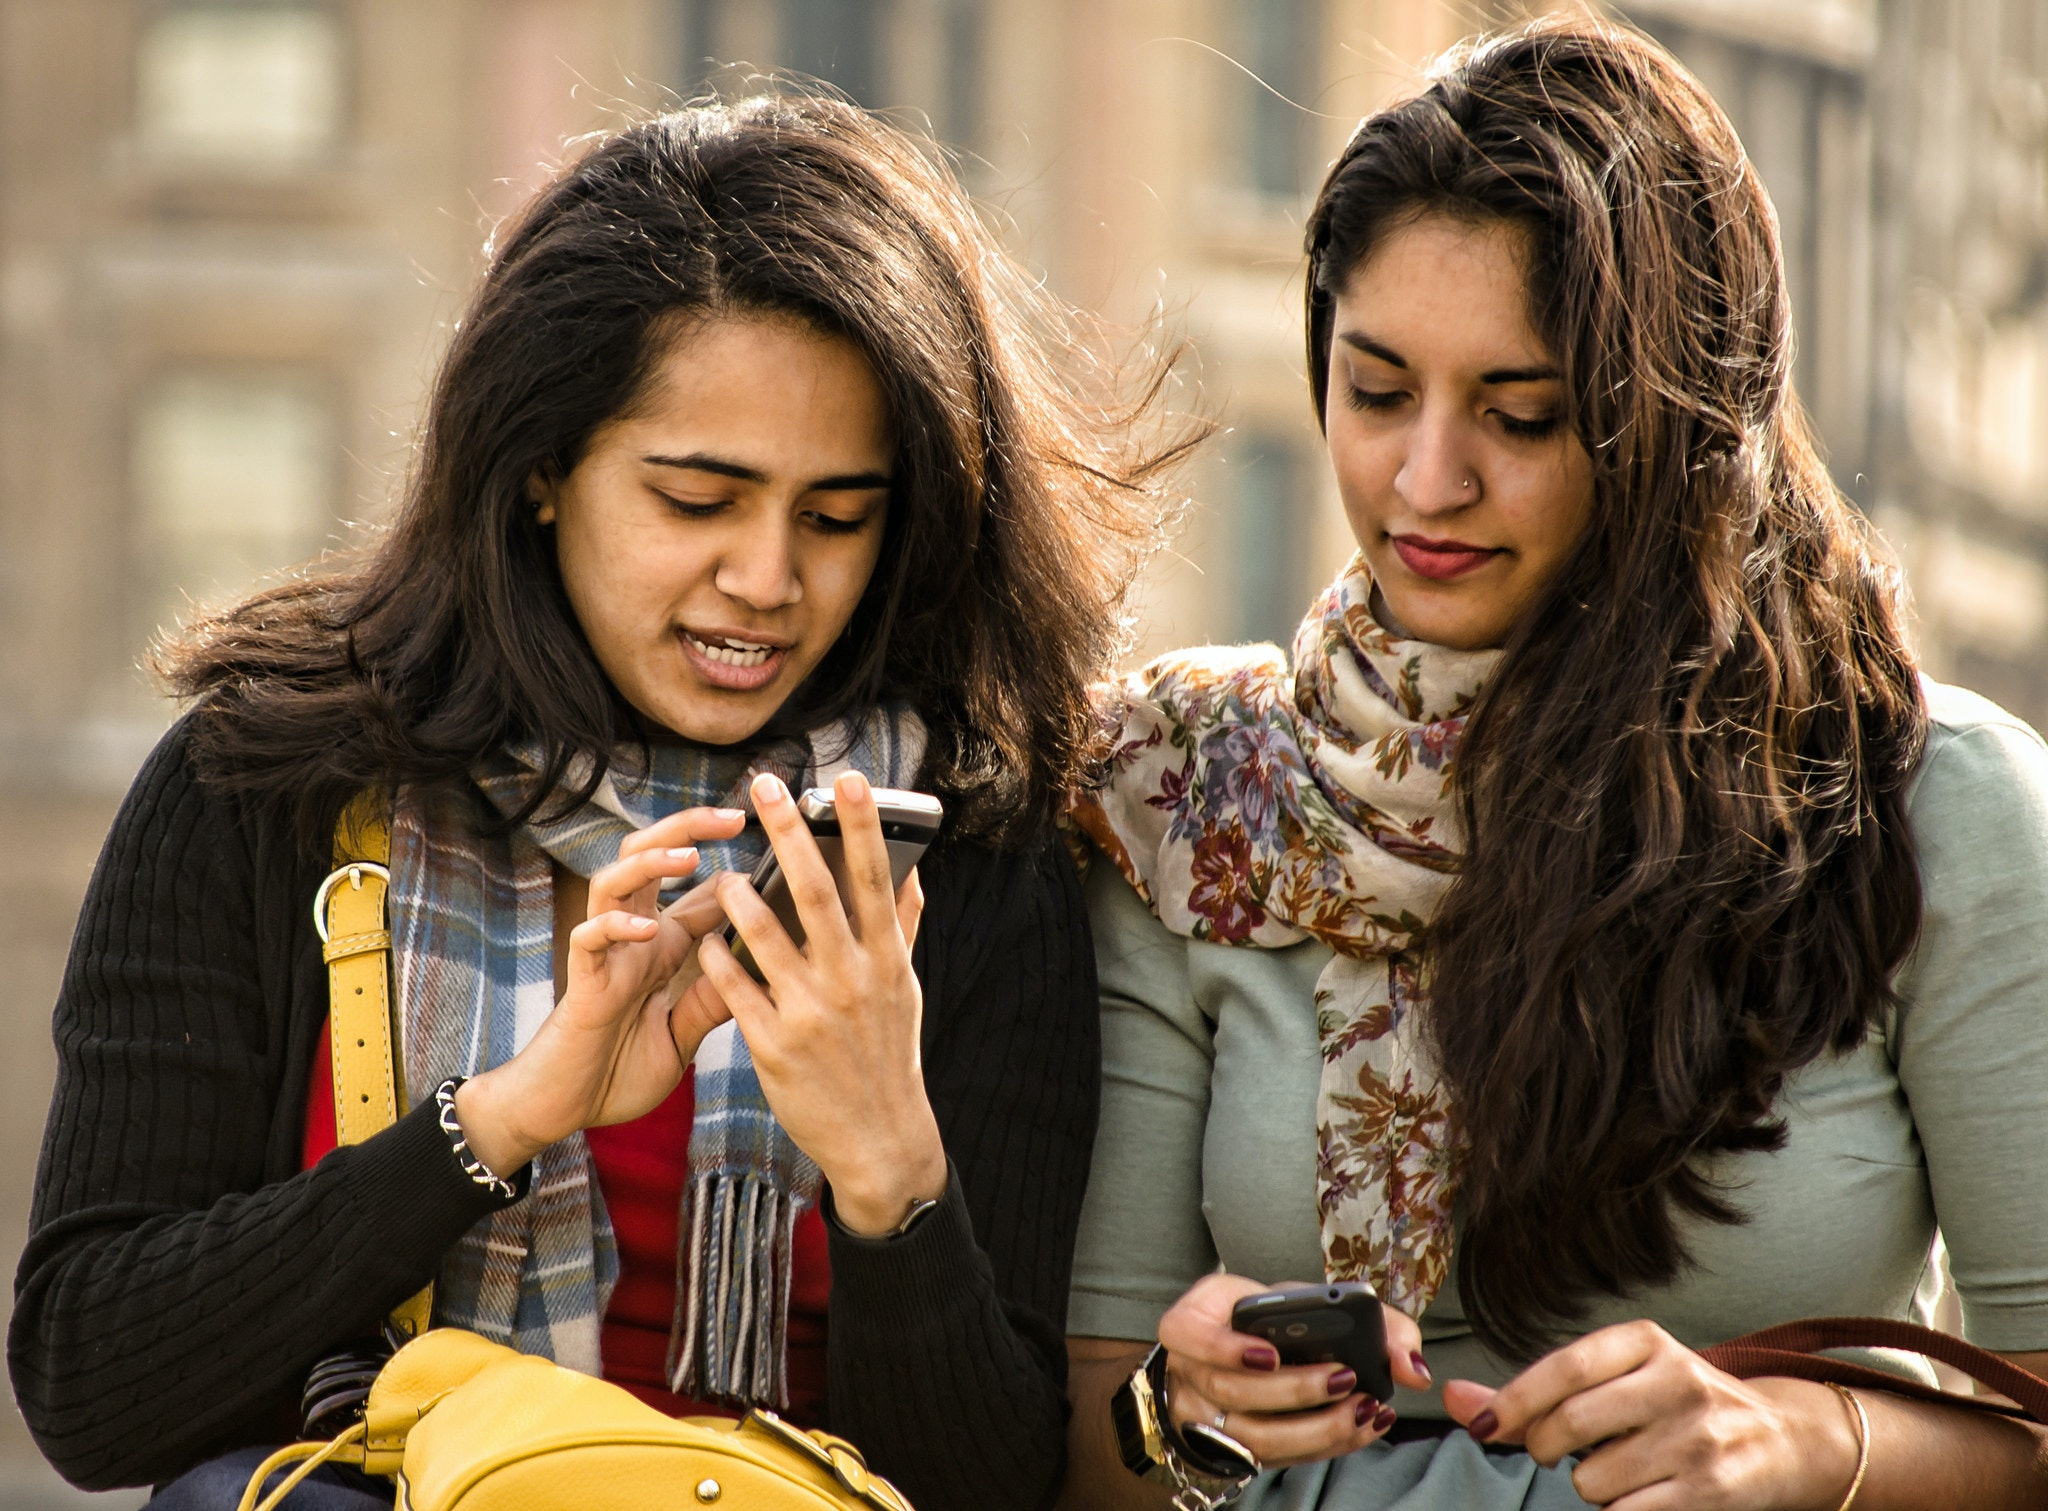 Could a tweet or a text increase college enrollment or student achievement?